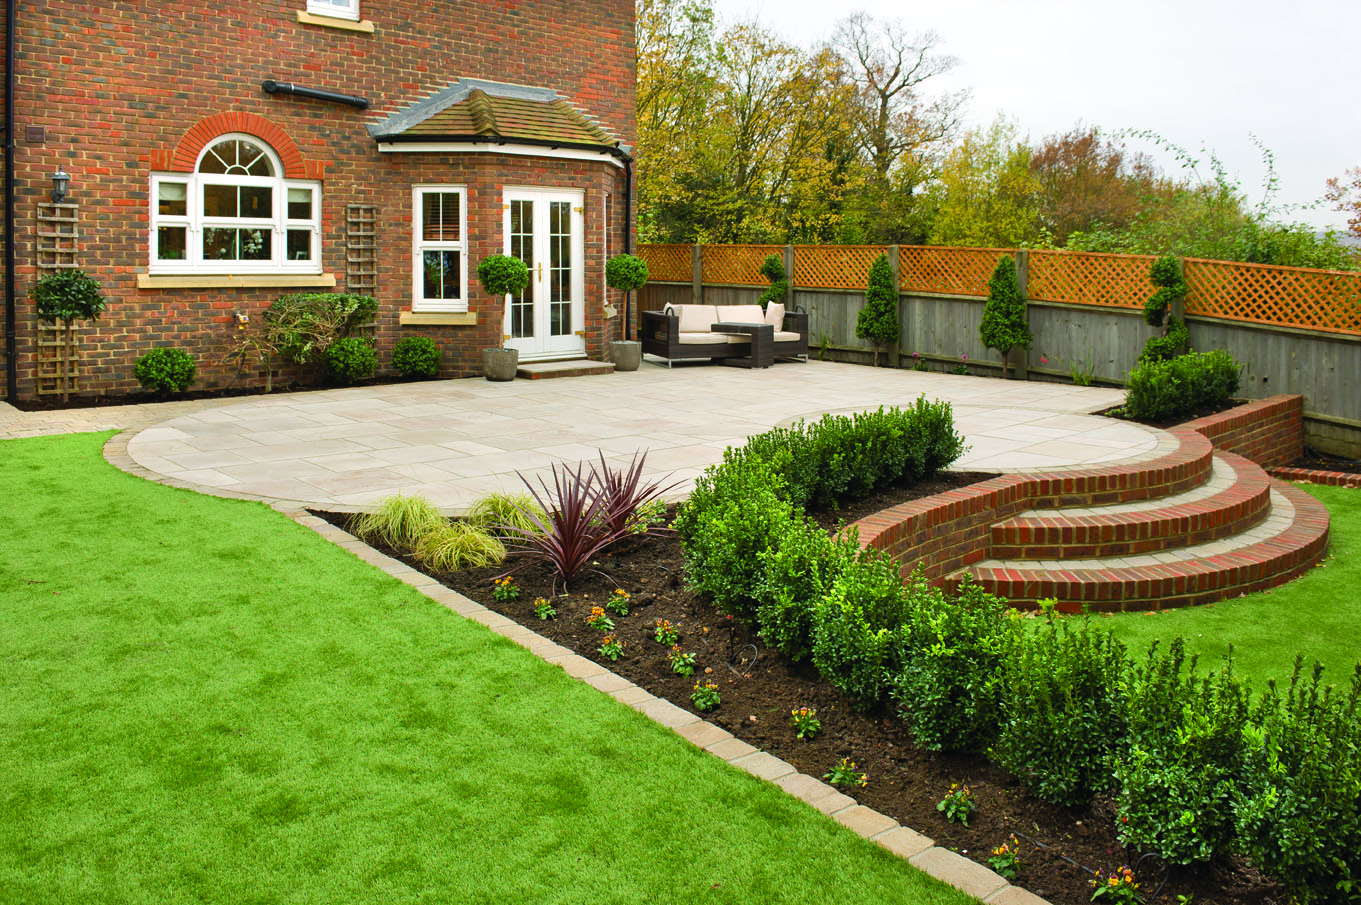 Enhanced natural stone range at heart of Brett Landscaping's new garden & drives offering